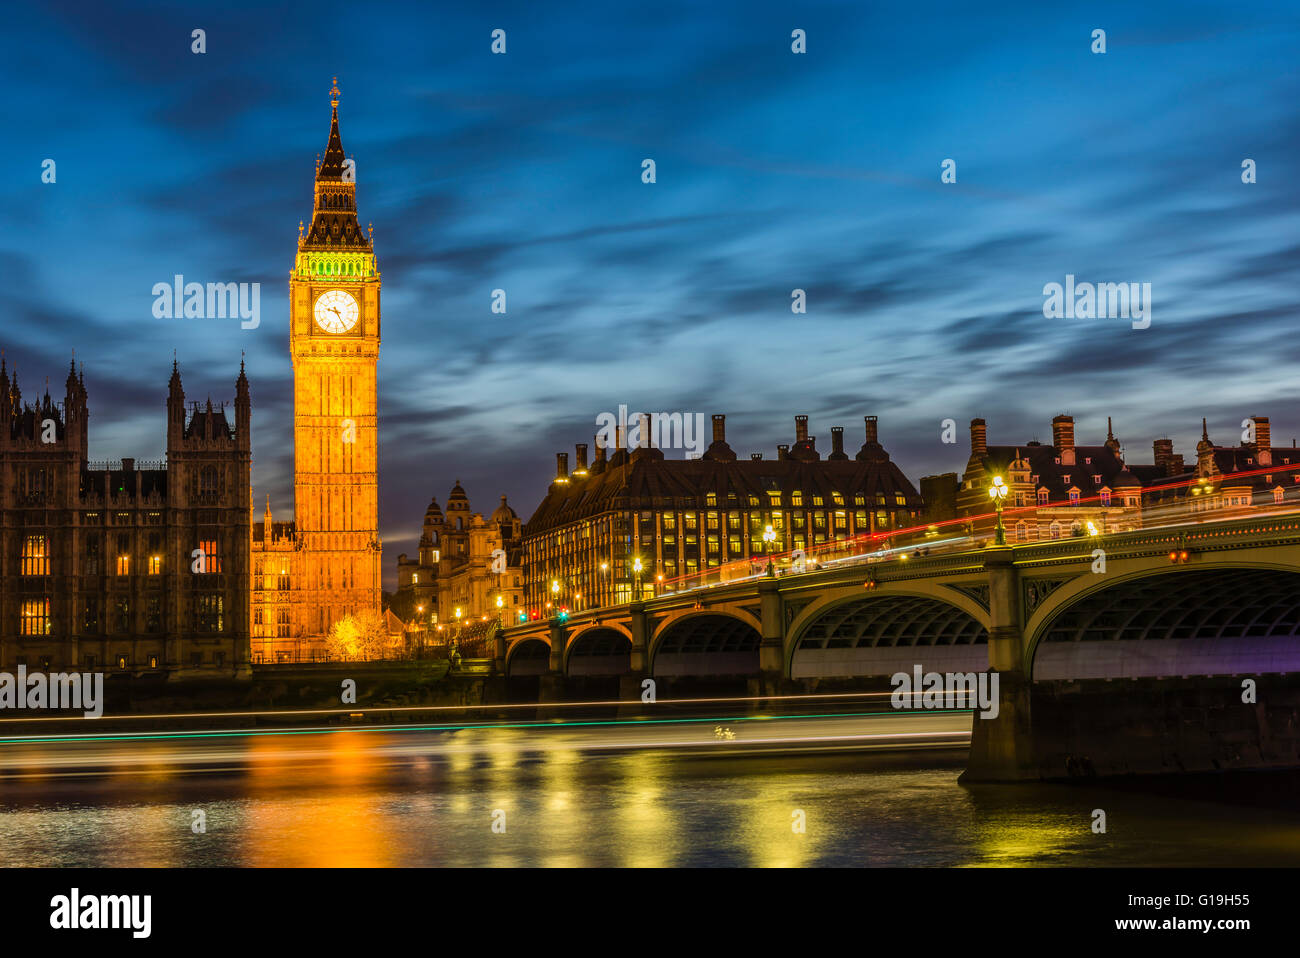 Long exposure after sunset capturing buses on Westminster Bridge and boats on the River Thames, London, UK. - Stock Image